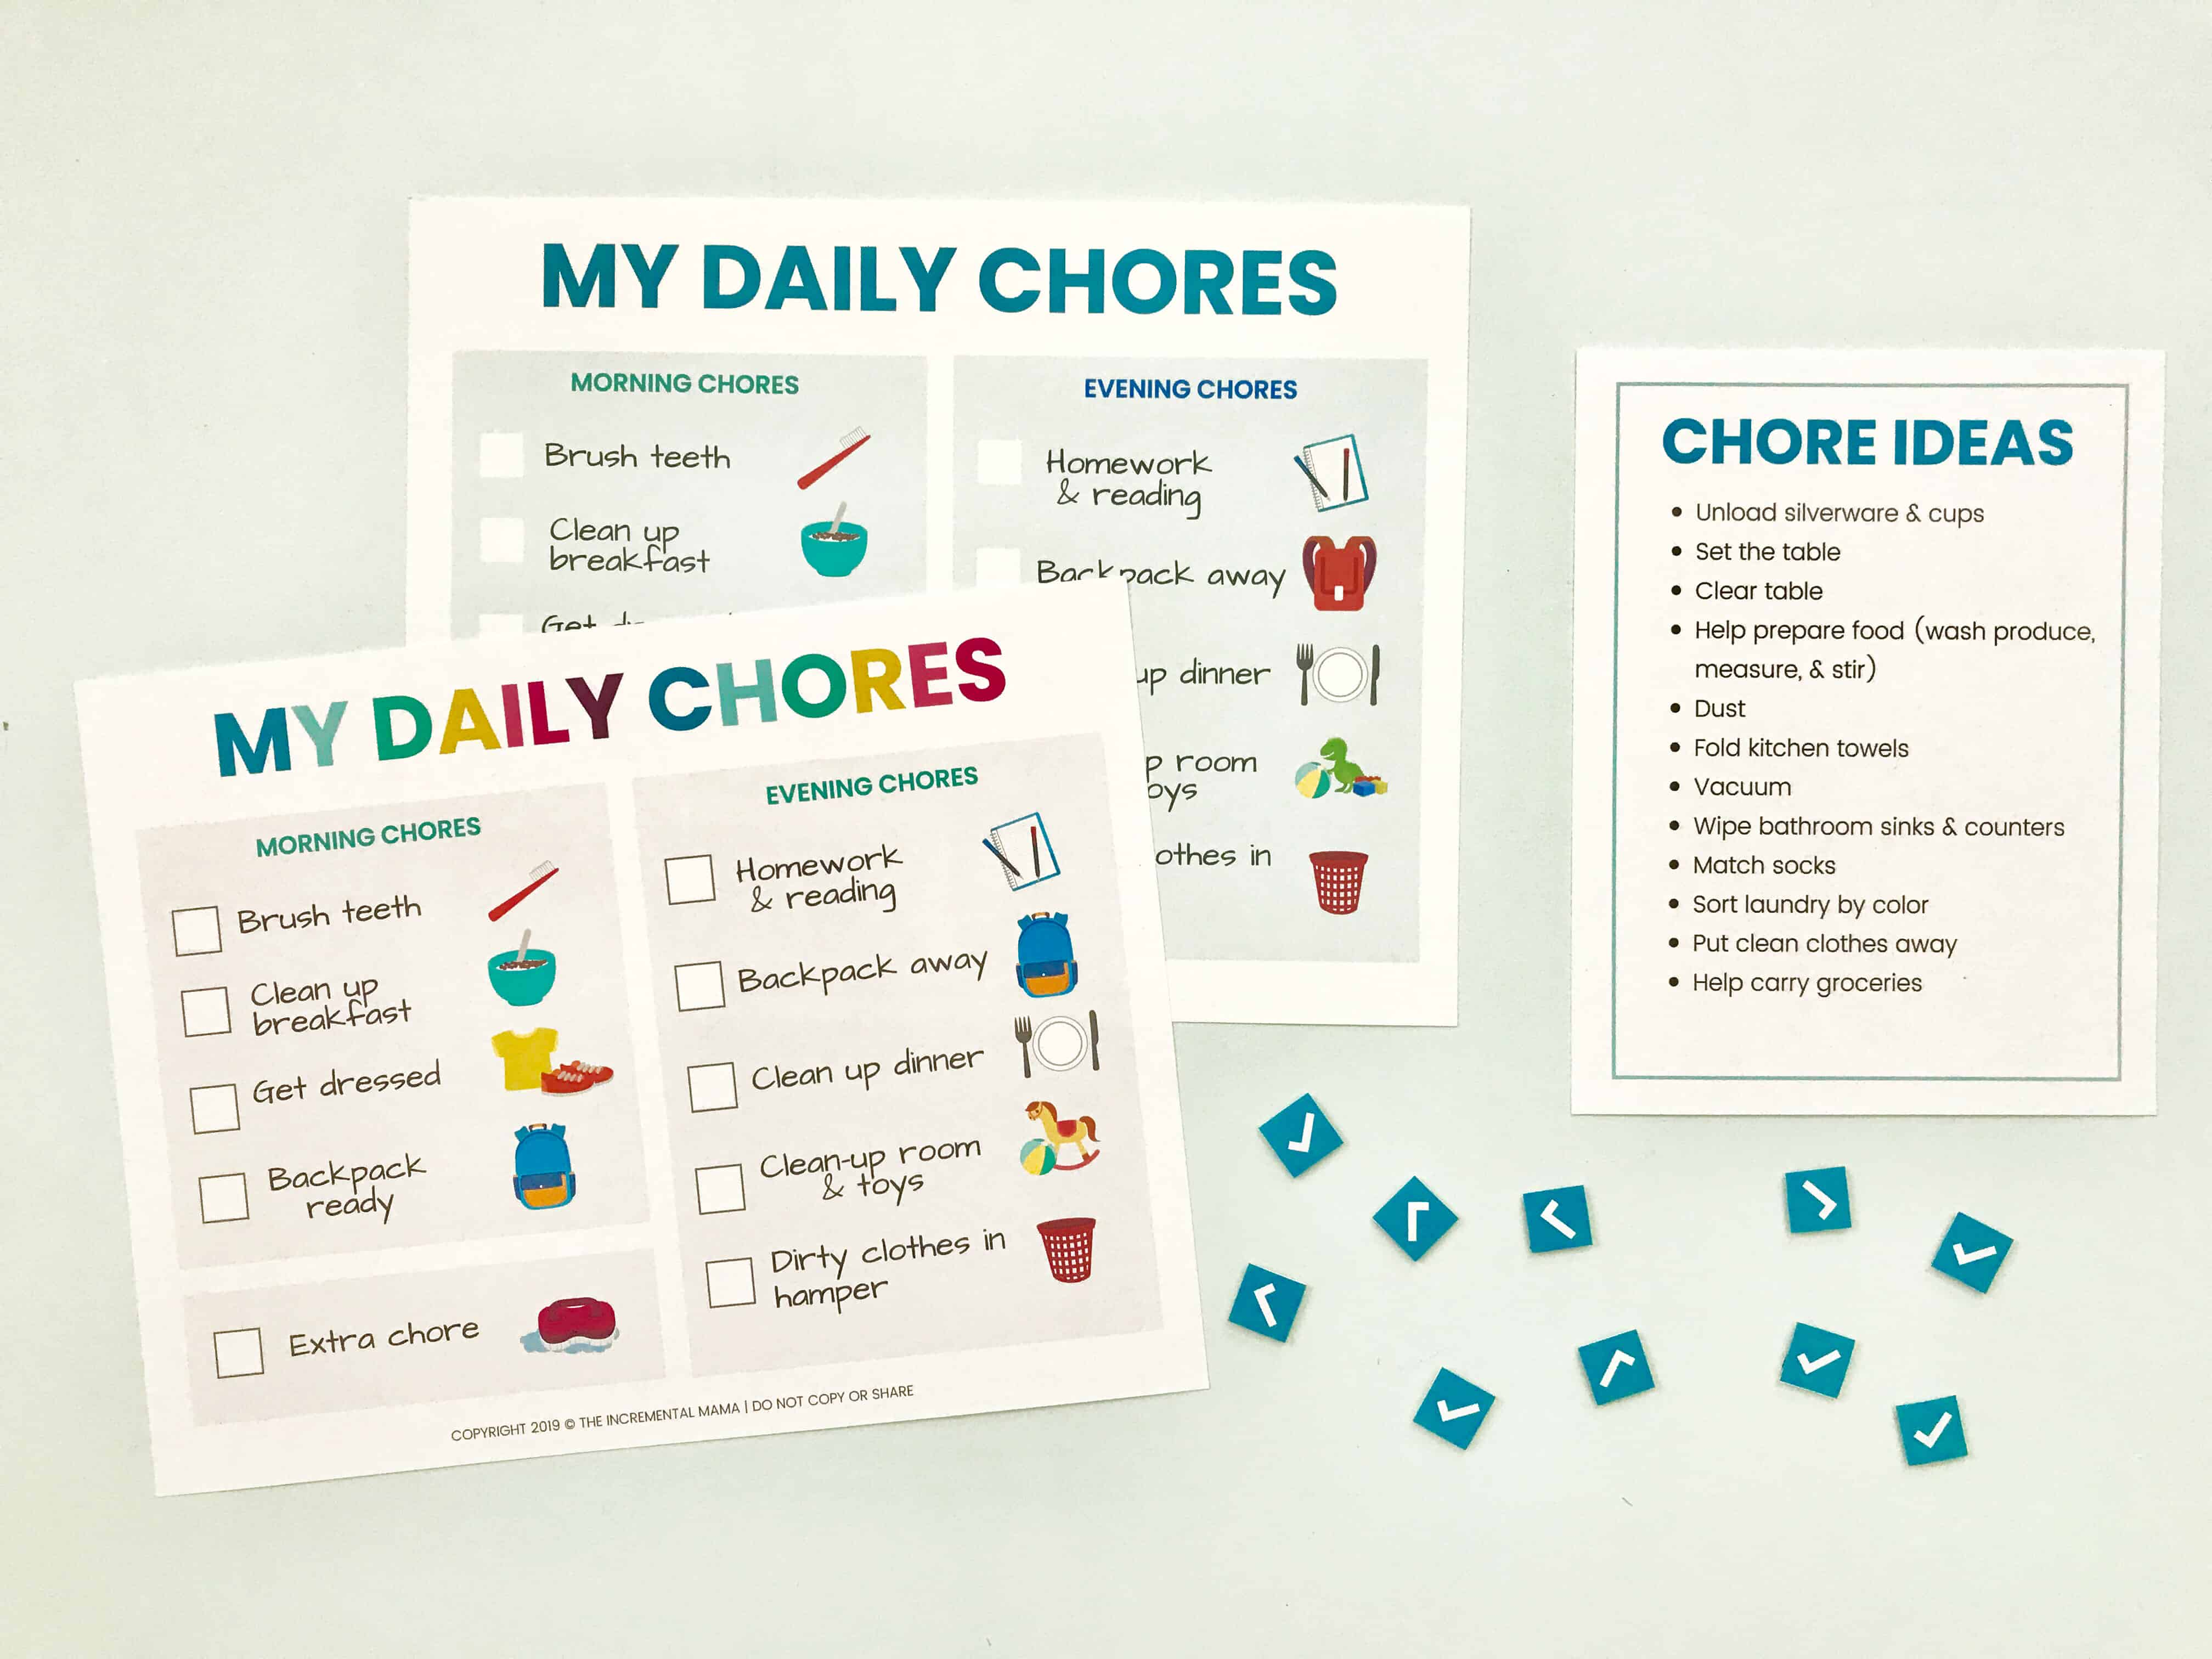 chore ideas for 5 year old